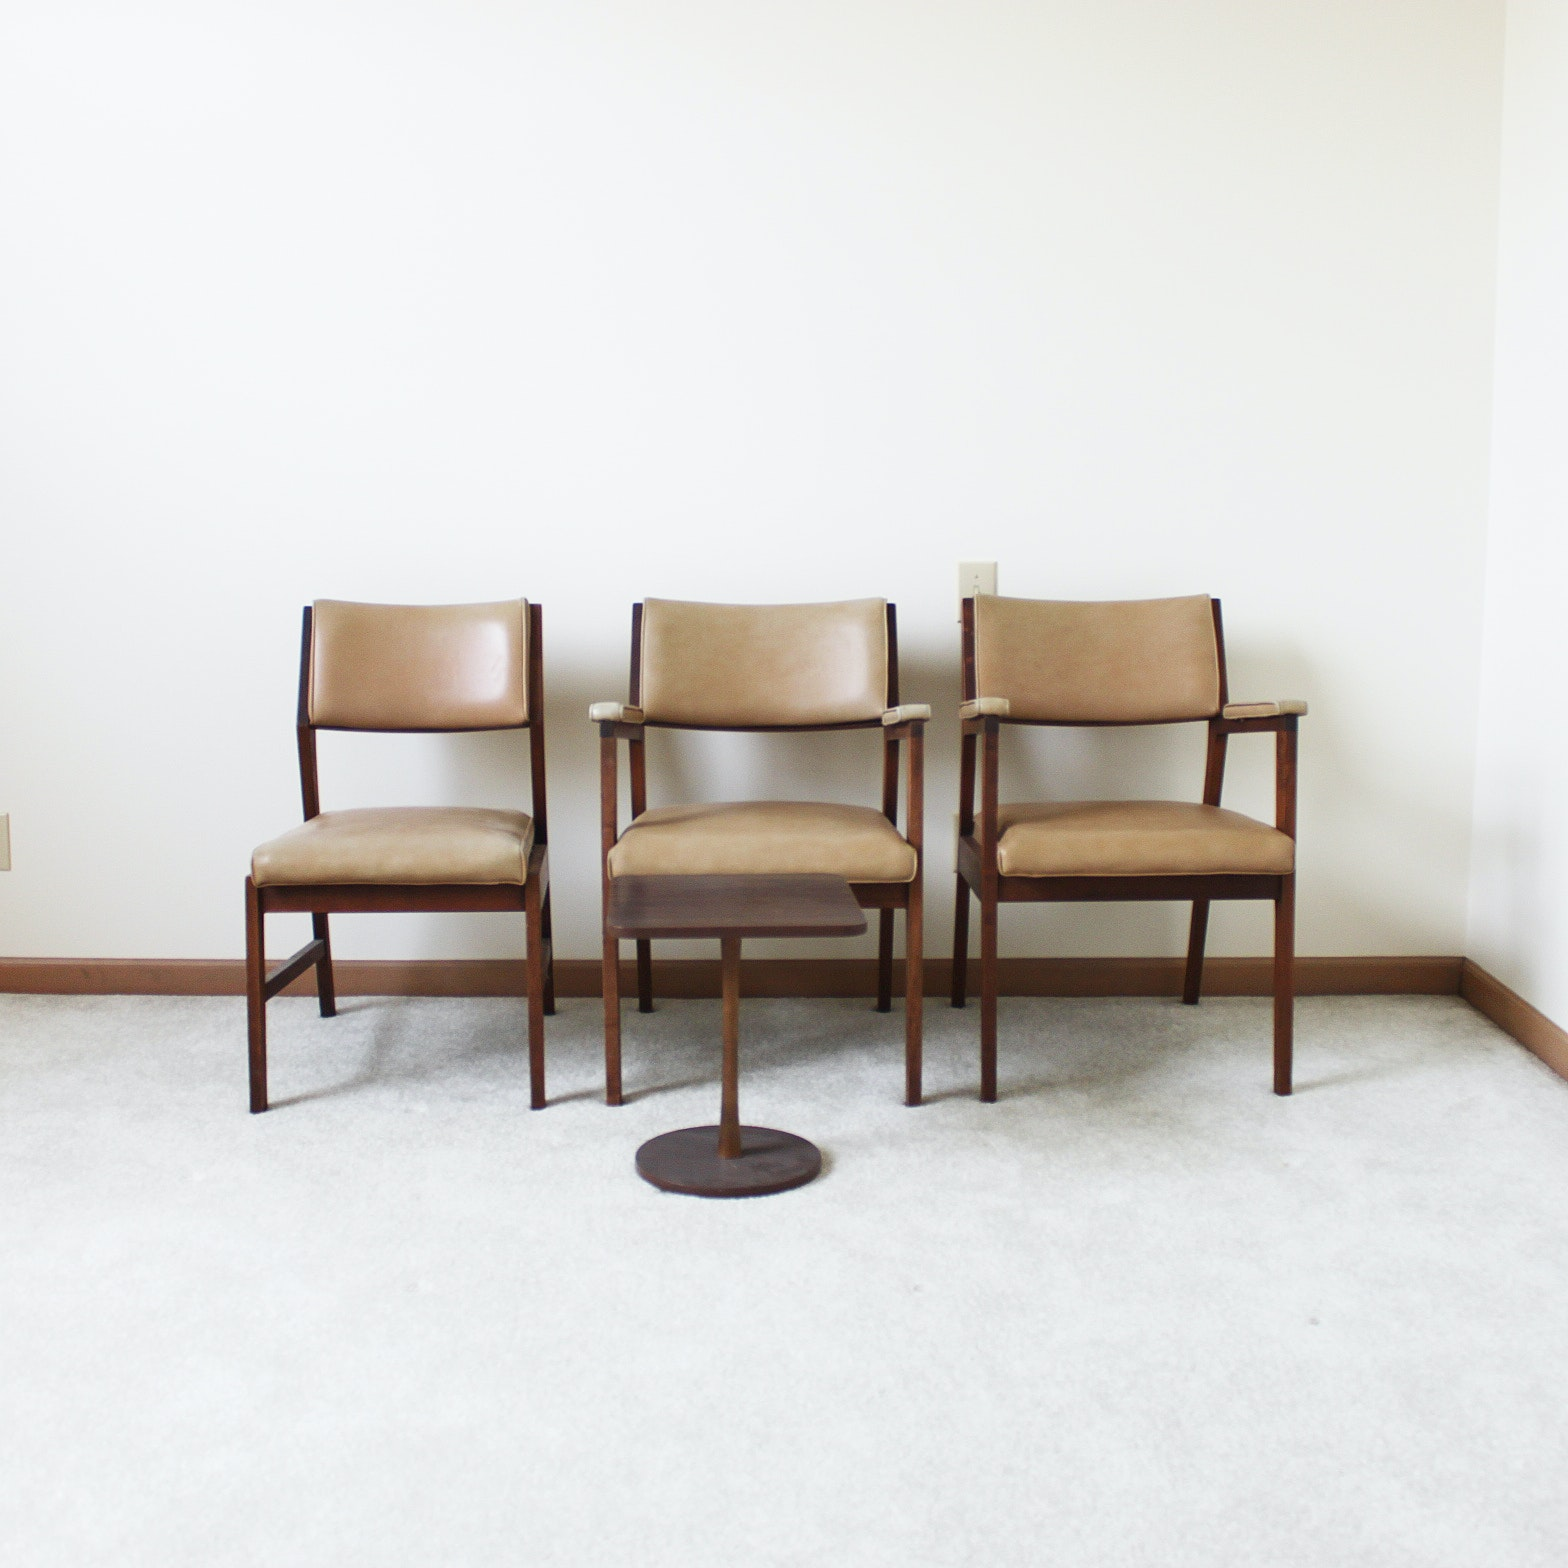 Vintage Mid-Century Alma Office Chairs and Side Table